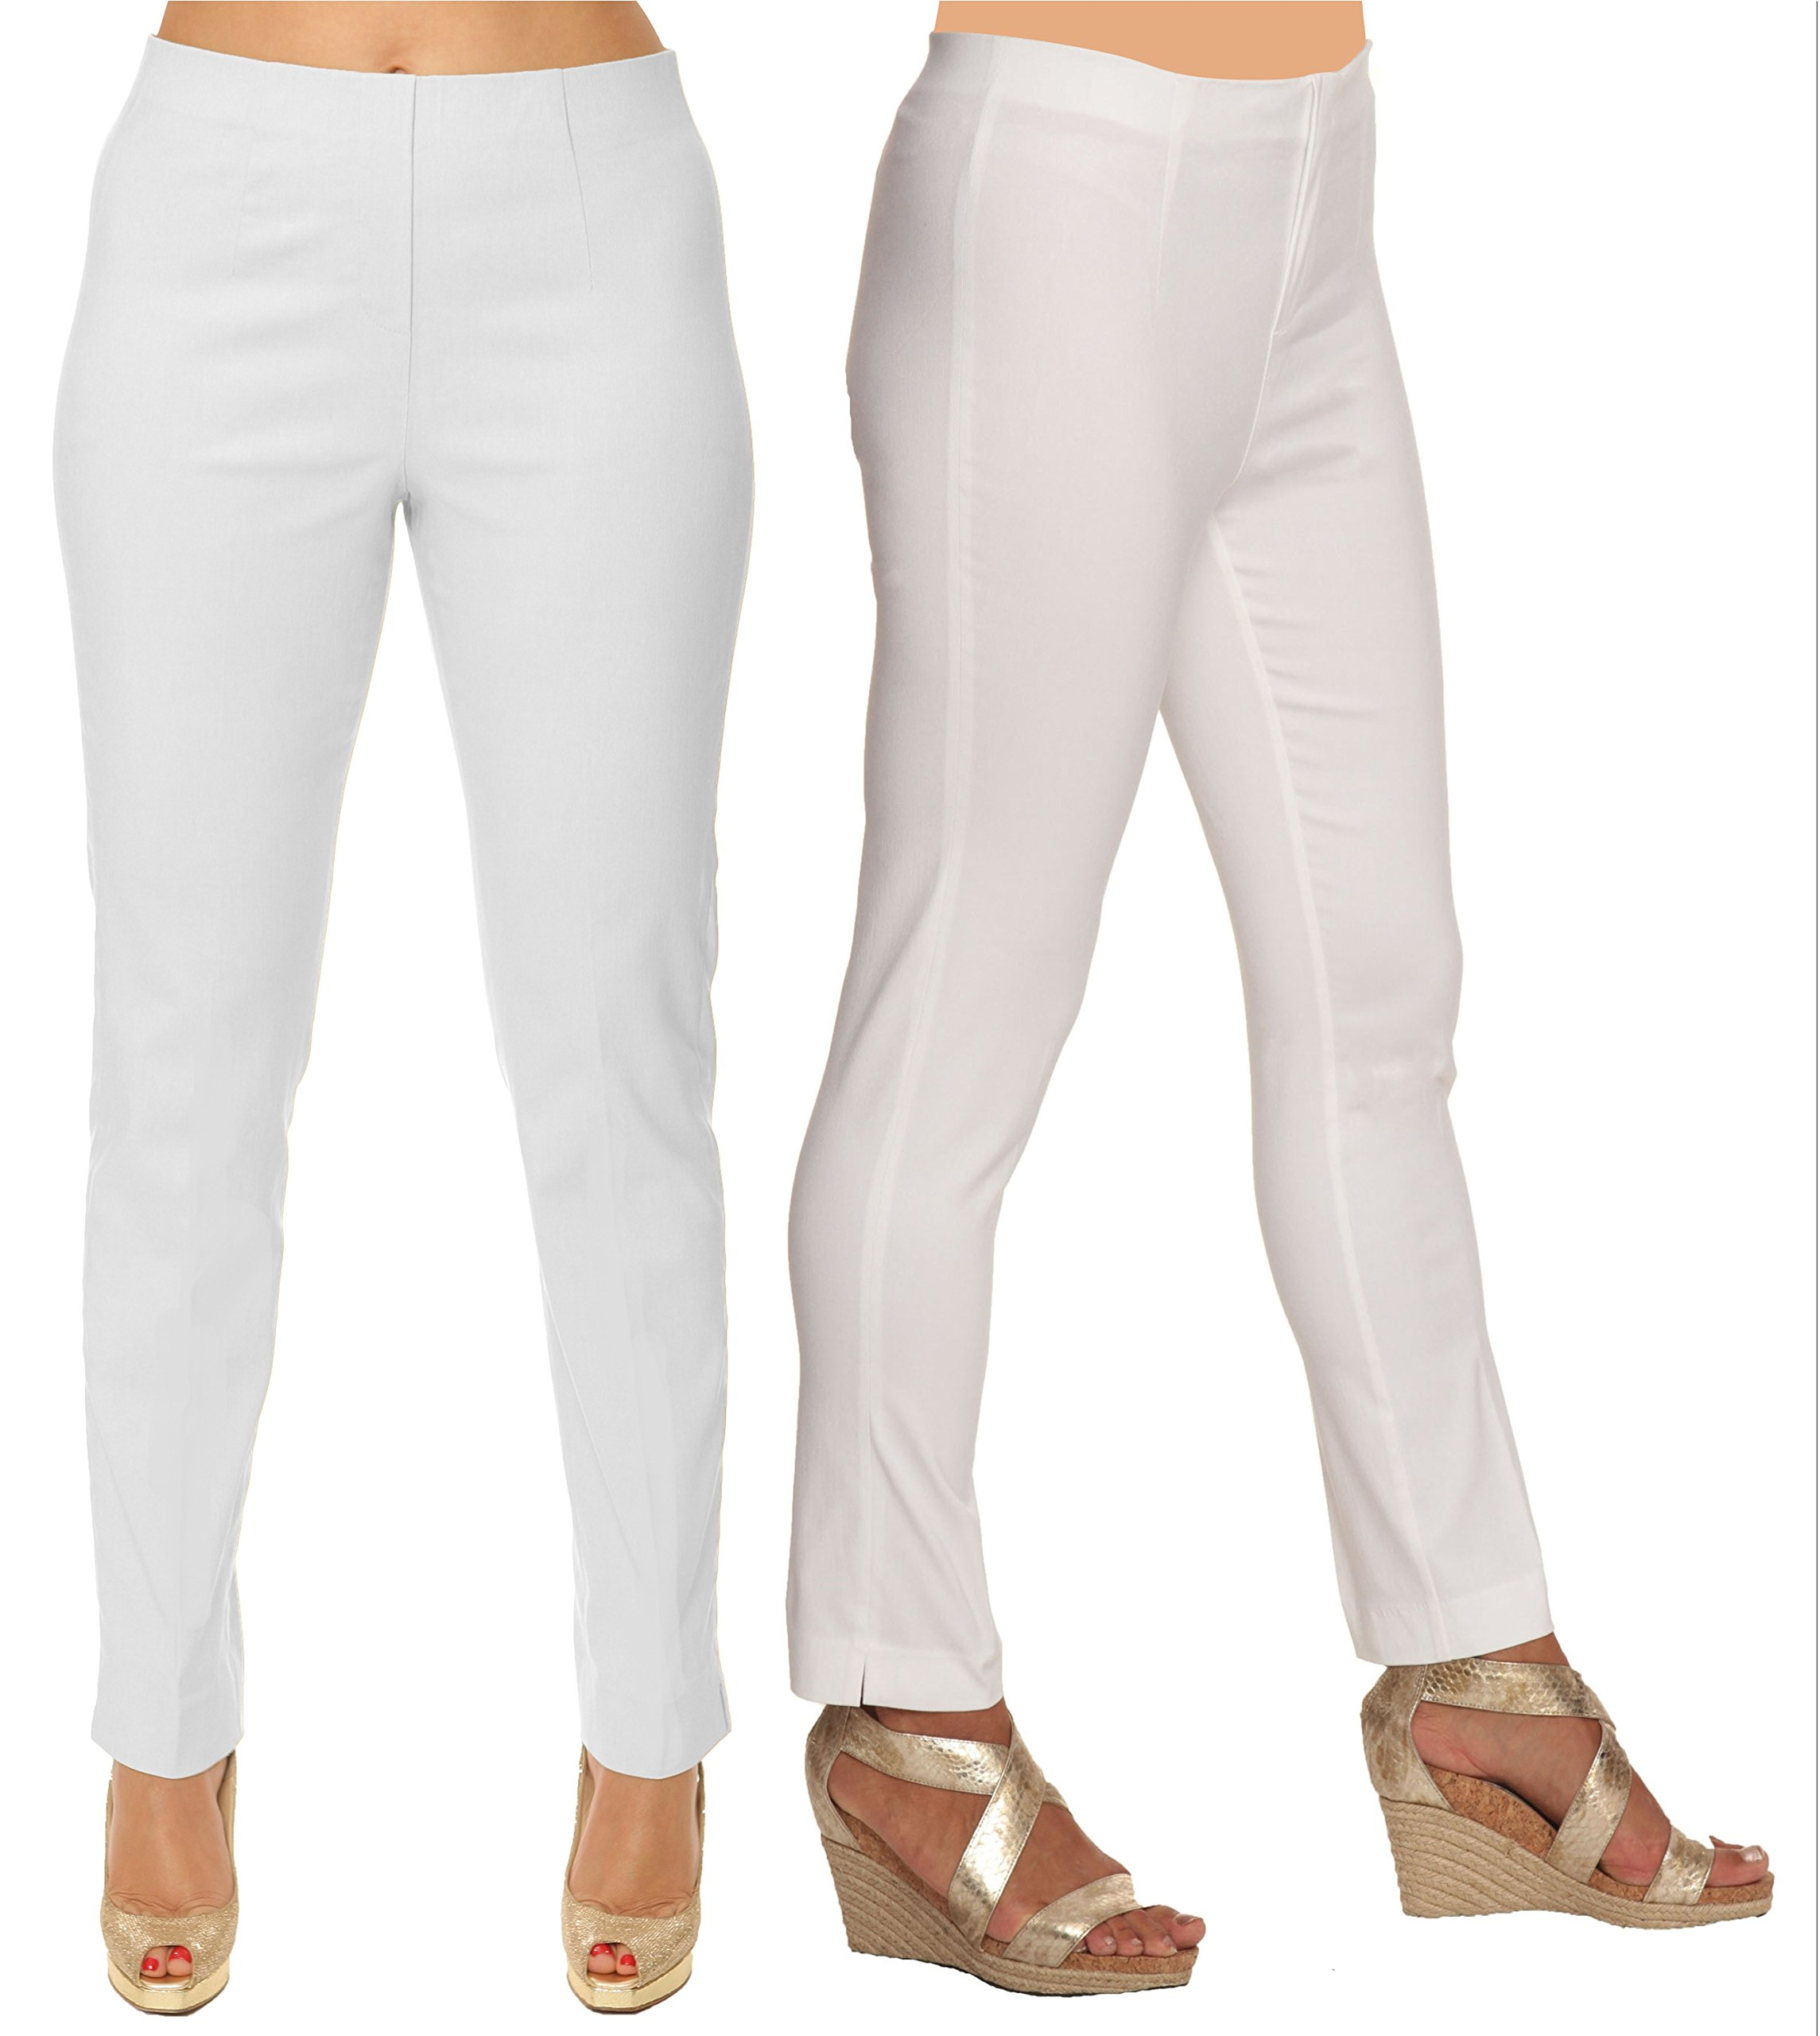 Lior Paris SASHA Essential Slim Fit Ankle Pant (10, White)